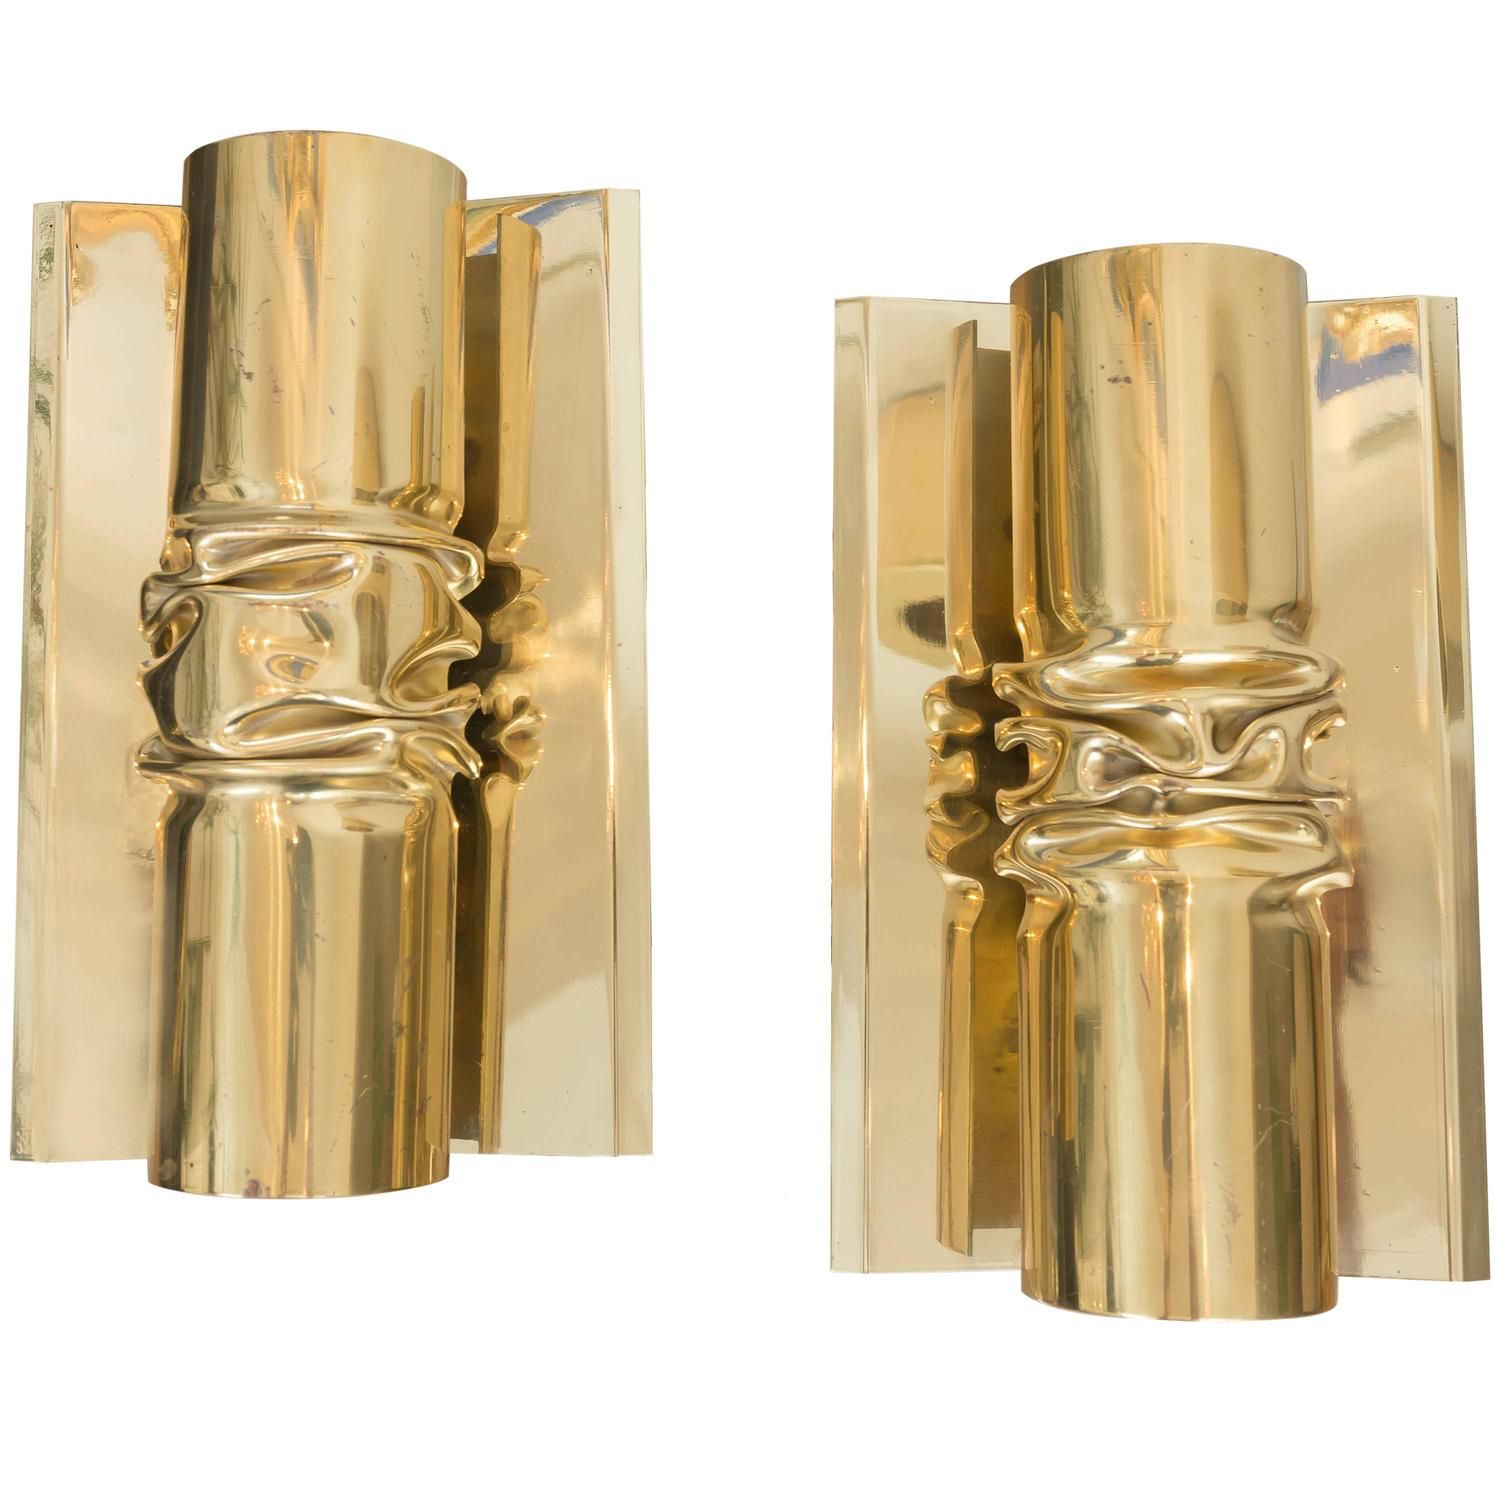 Brutalist italian brass scones see more antique and modern wall